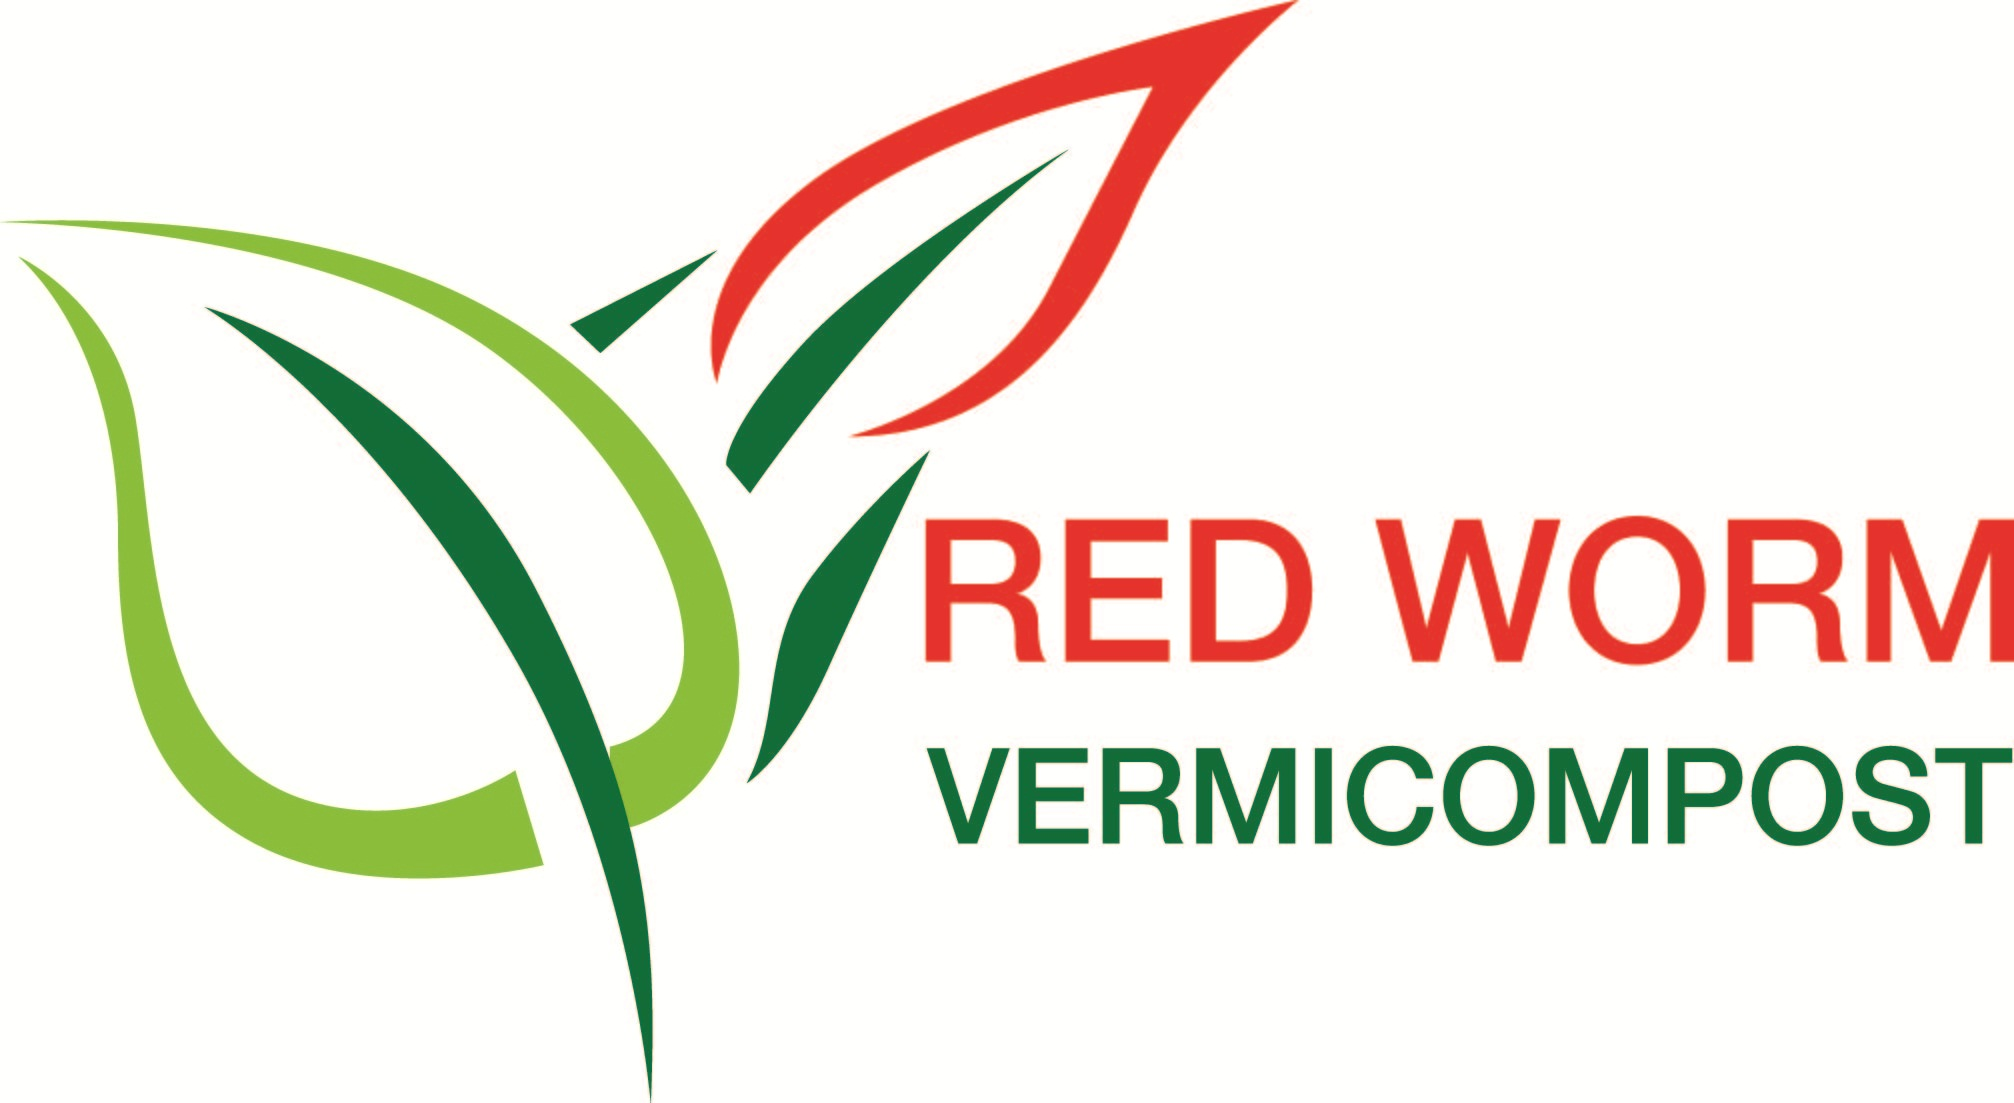 RED WORM VERMICOMPOST